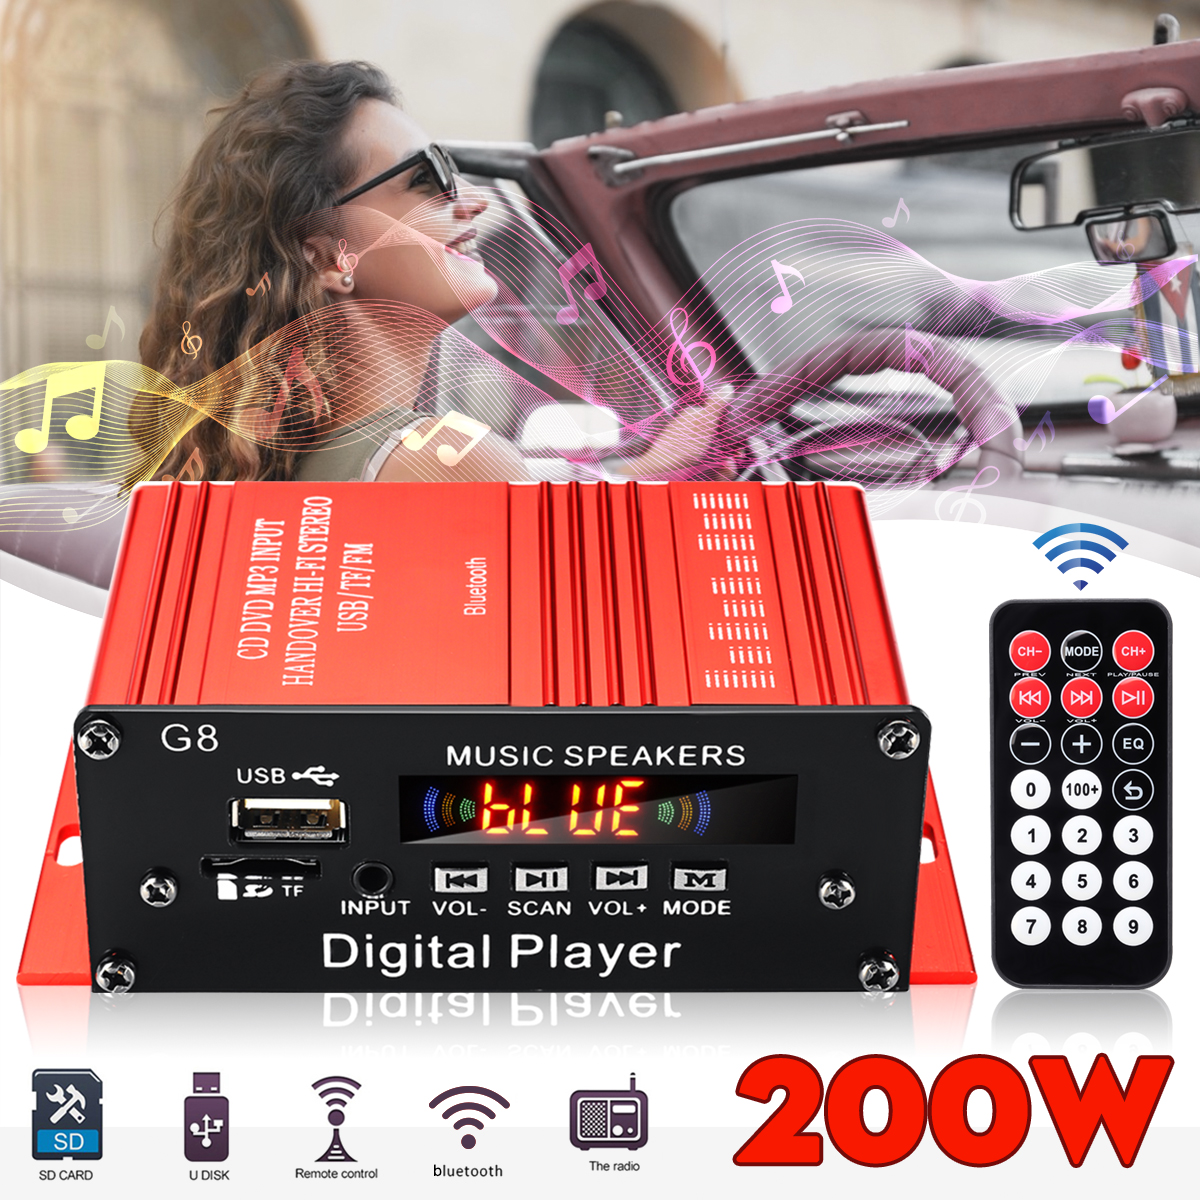 2CH 12V Car Home Stereo Sound <font><b>Amplifiers</b></font> <font><b>HIFI</b></font> Audio <font><b>Amplifier</b></font> bluetooth Car Amplificador FM Radio Music Player Remote Control image